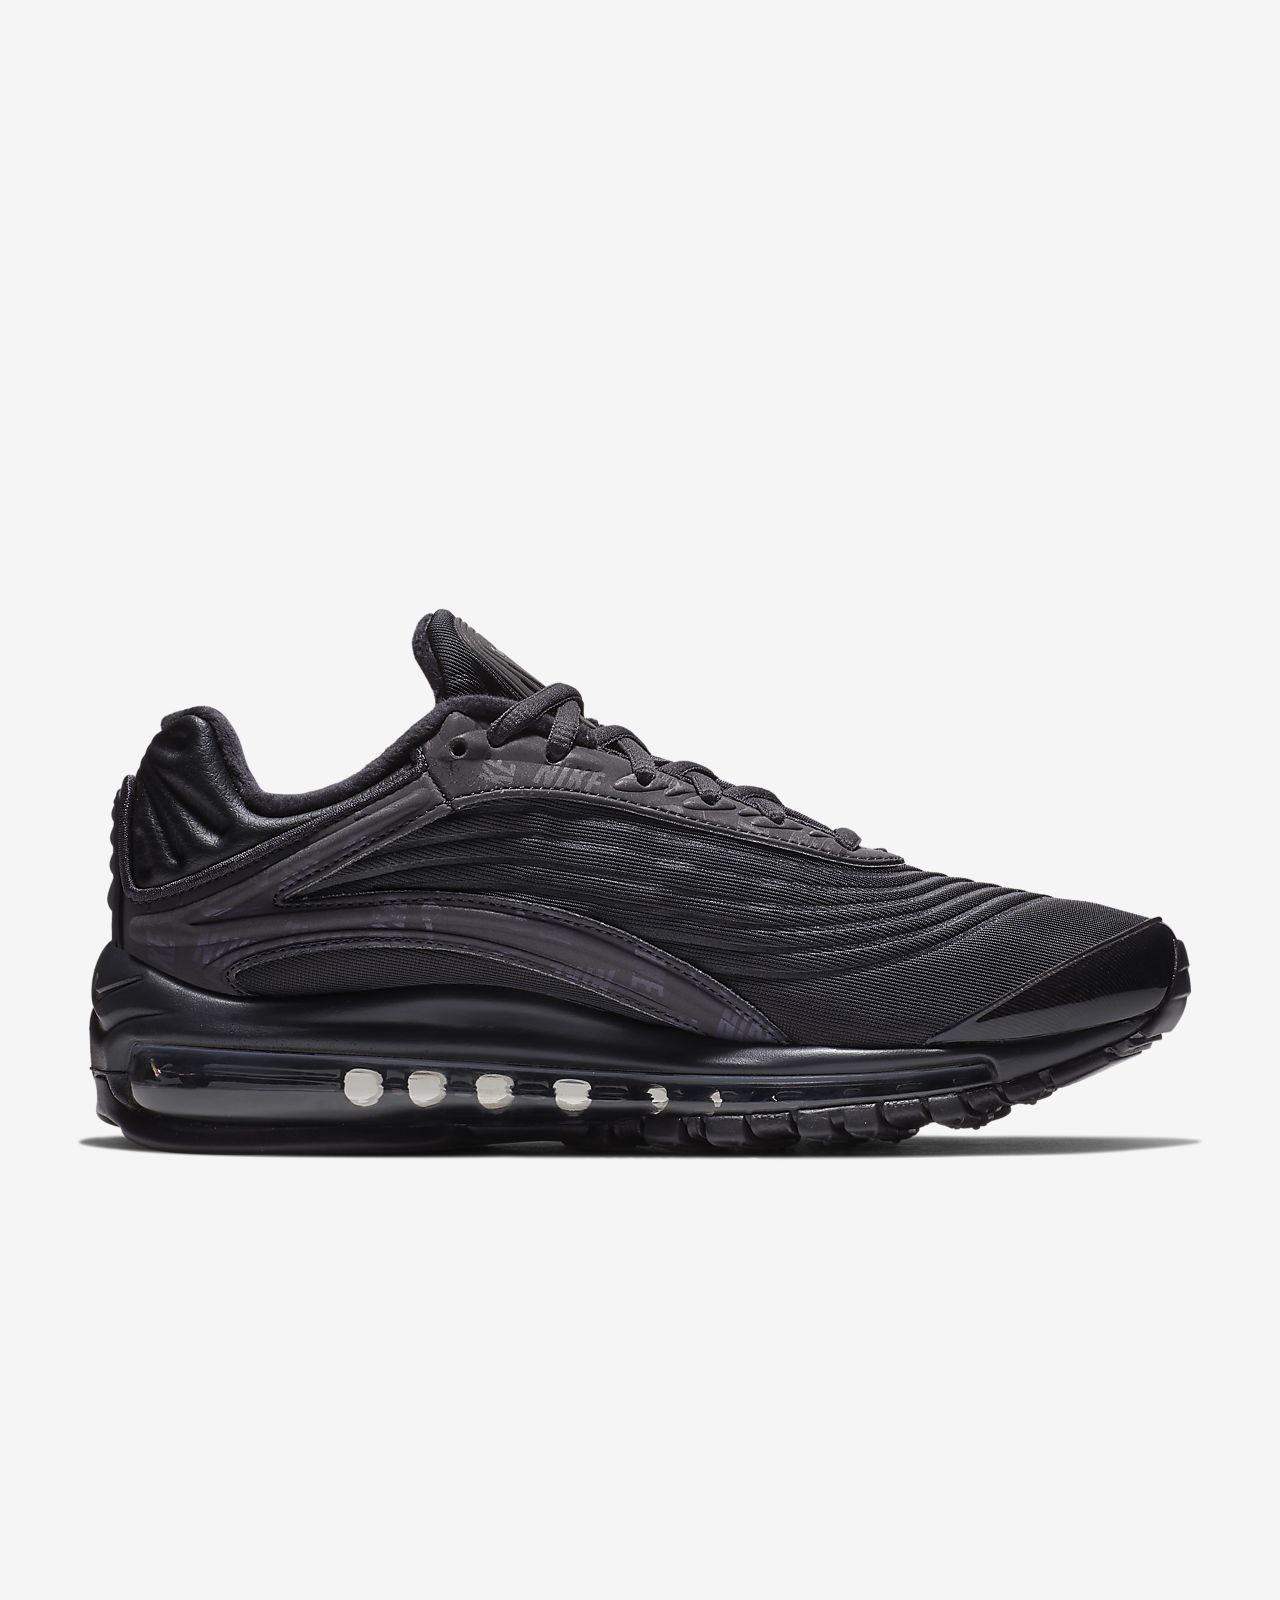 Chaussure Nike Air Max Deluxe SE pour Femme